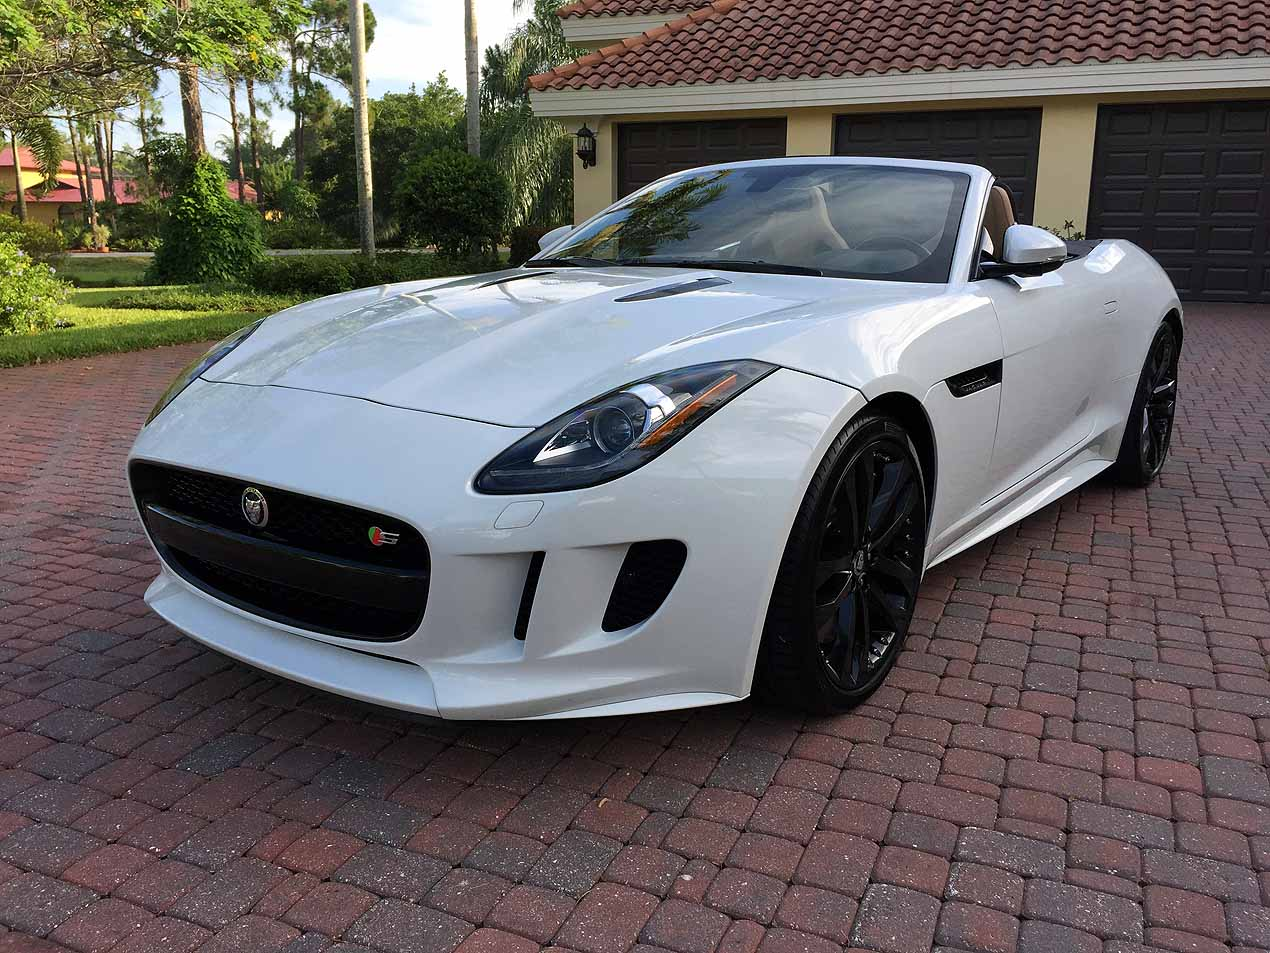 used cars for sale in naples florida we sell quality. Black Bedroom Furniture Sets. Home Design Ideas